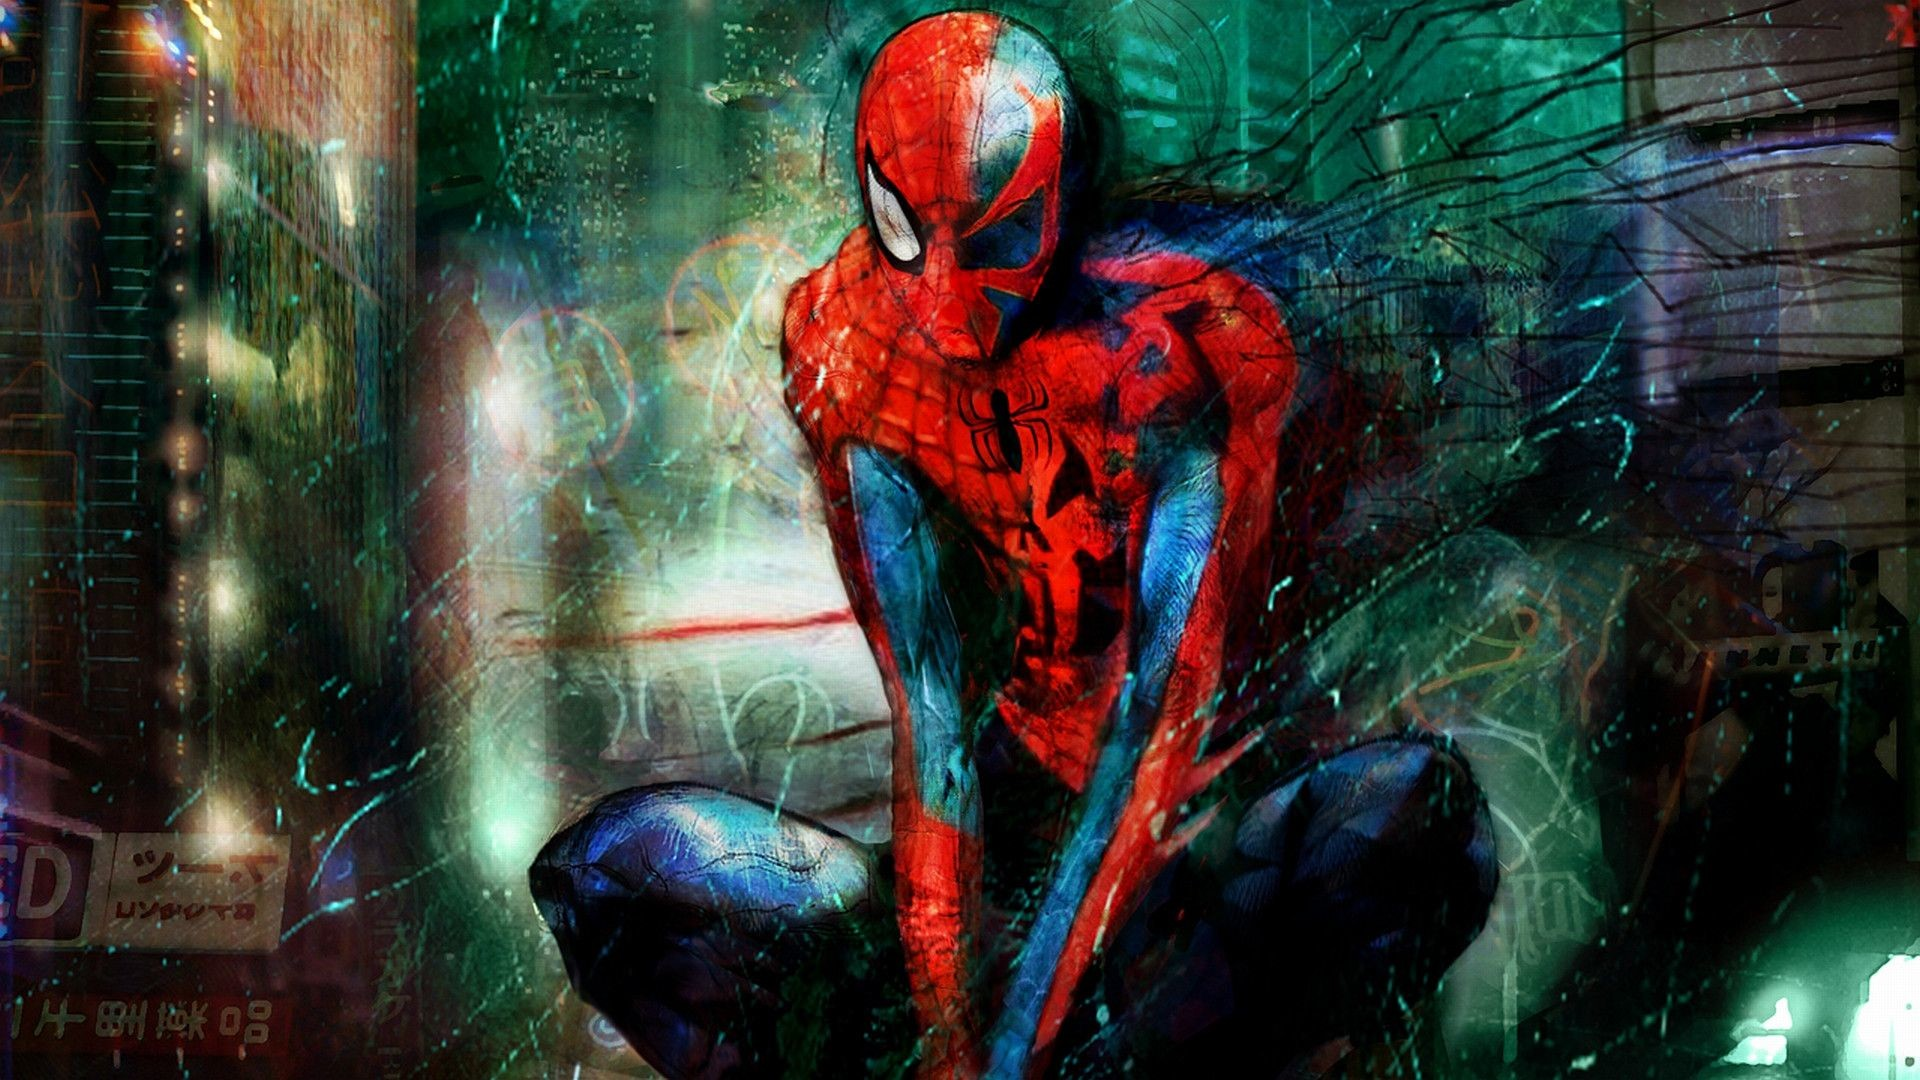 Spider Man 2099 Wallpaper 78 Images